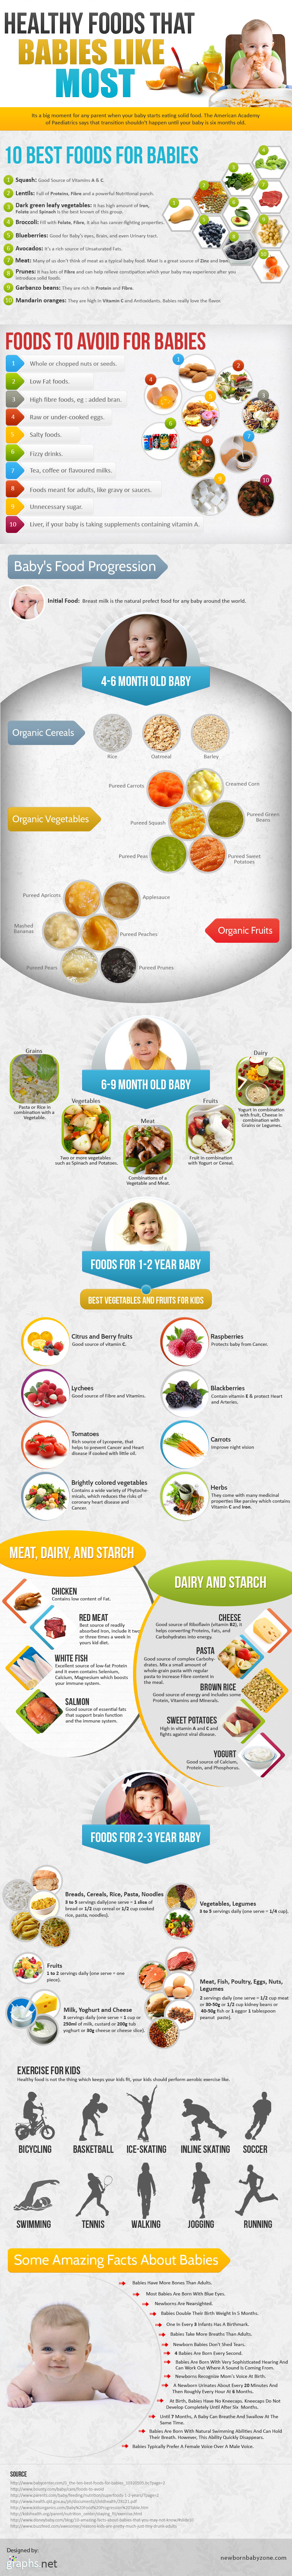 Perfect food items for babies at different stages